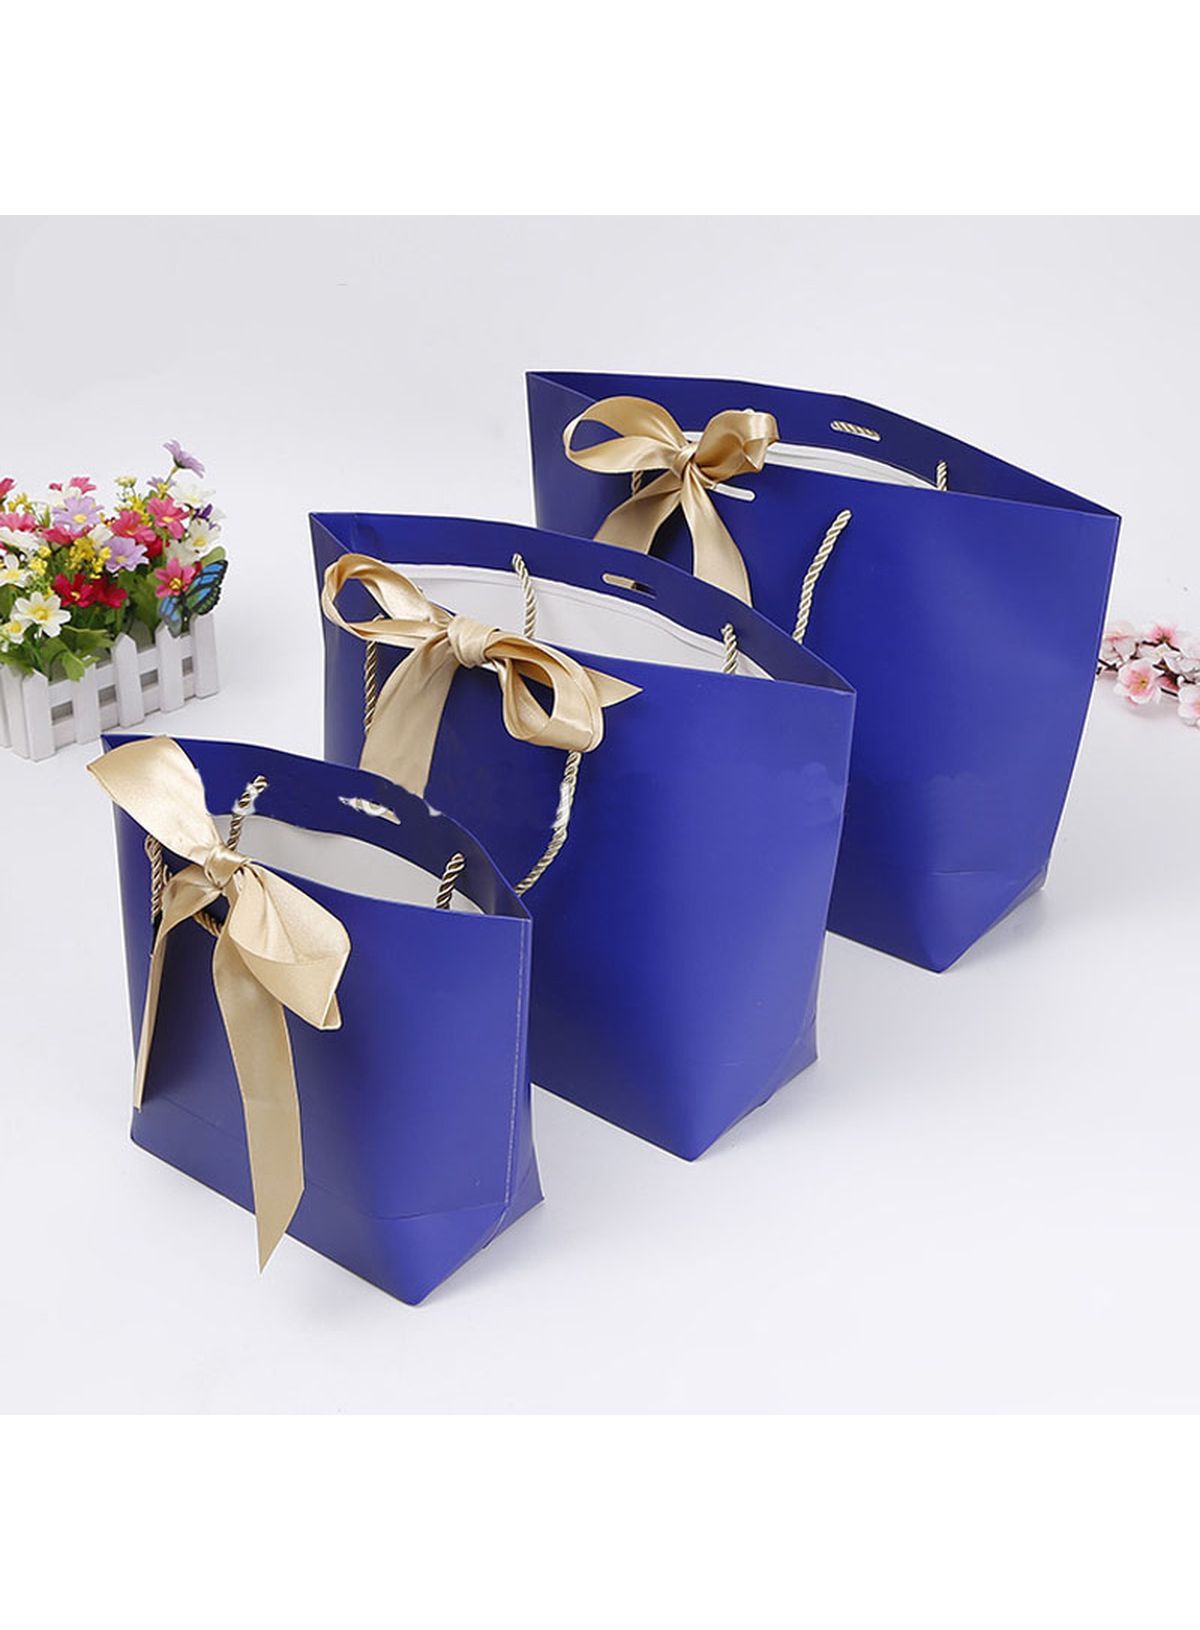 Cake Decor Big Purse Style Paper Carry Bags With Bow Mix Color Arifeonline Arife Lamoulde Online Store